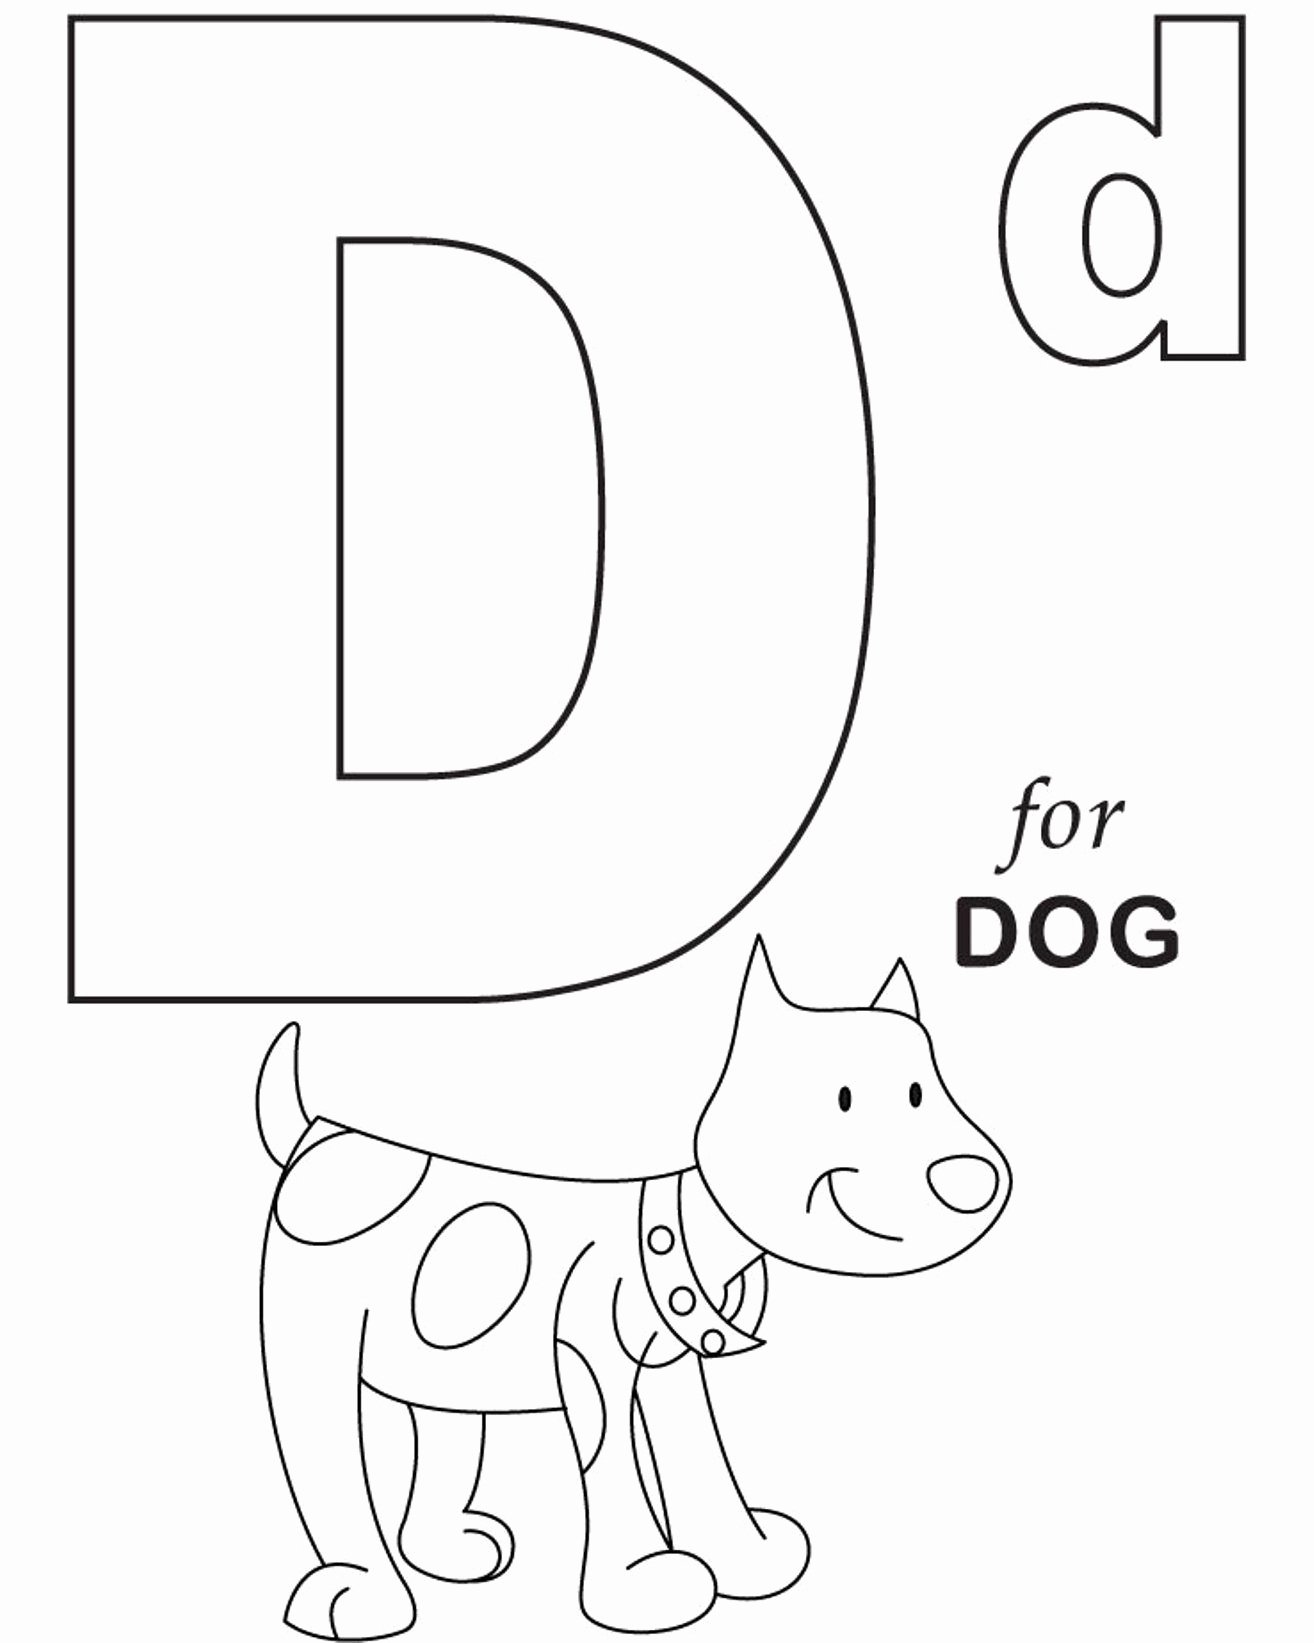 Alphabet Colouring Worksheets for Preschoolers New Coloring Pages Alphabet for Dog Printable Letter